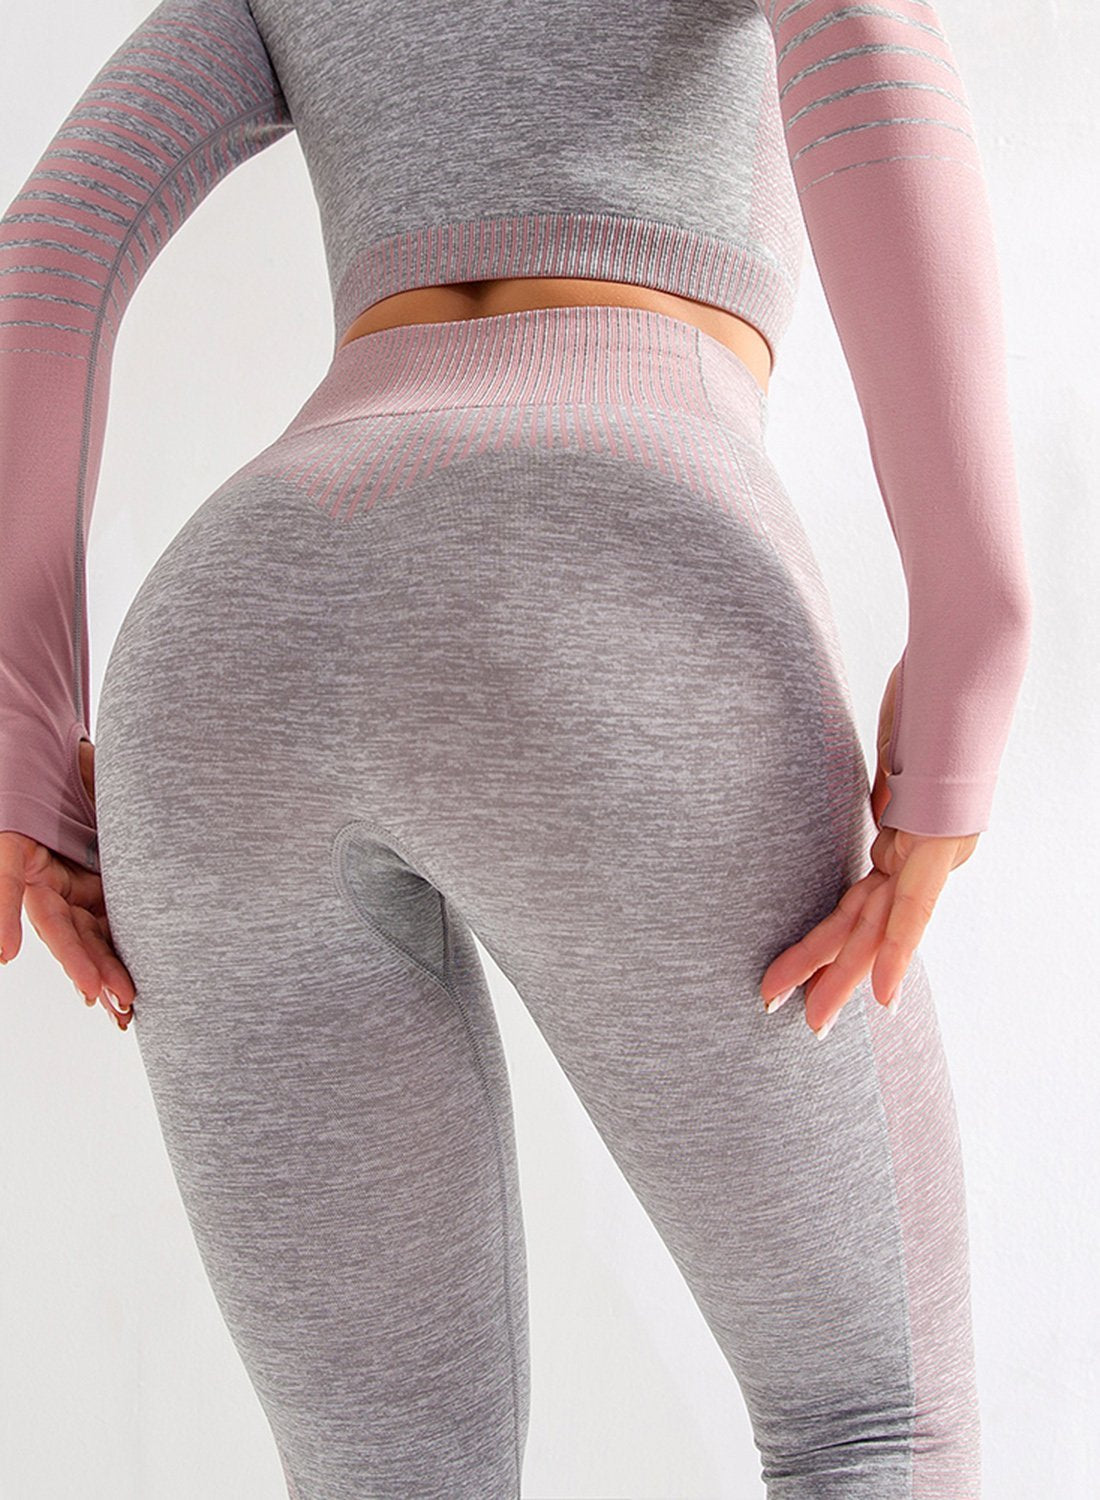 Super Stretchy Seamless Gradient Color Leggings-JustFittoo